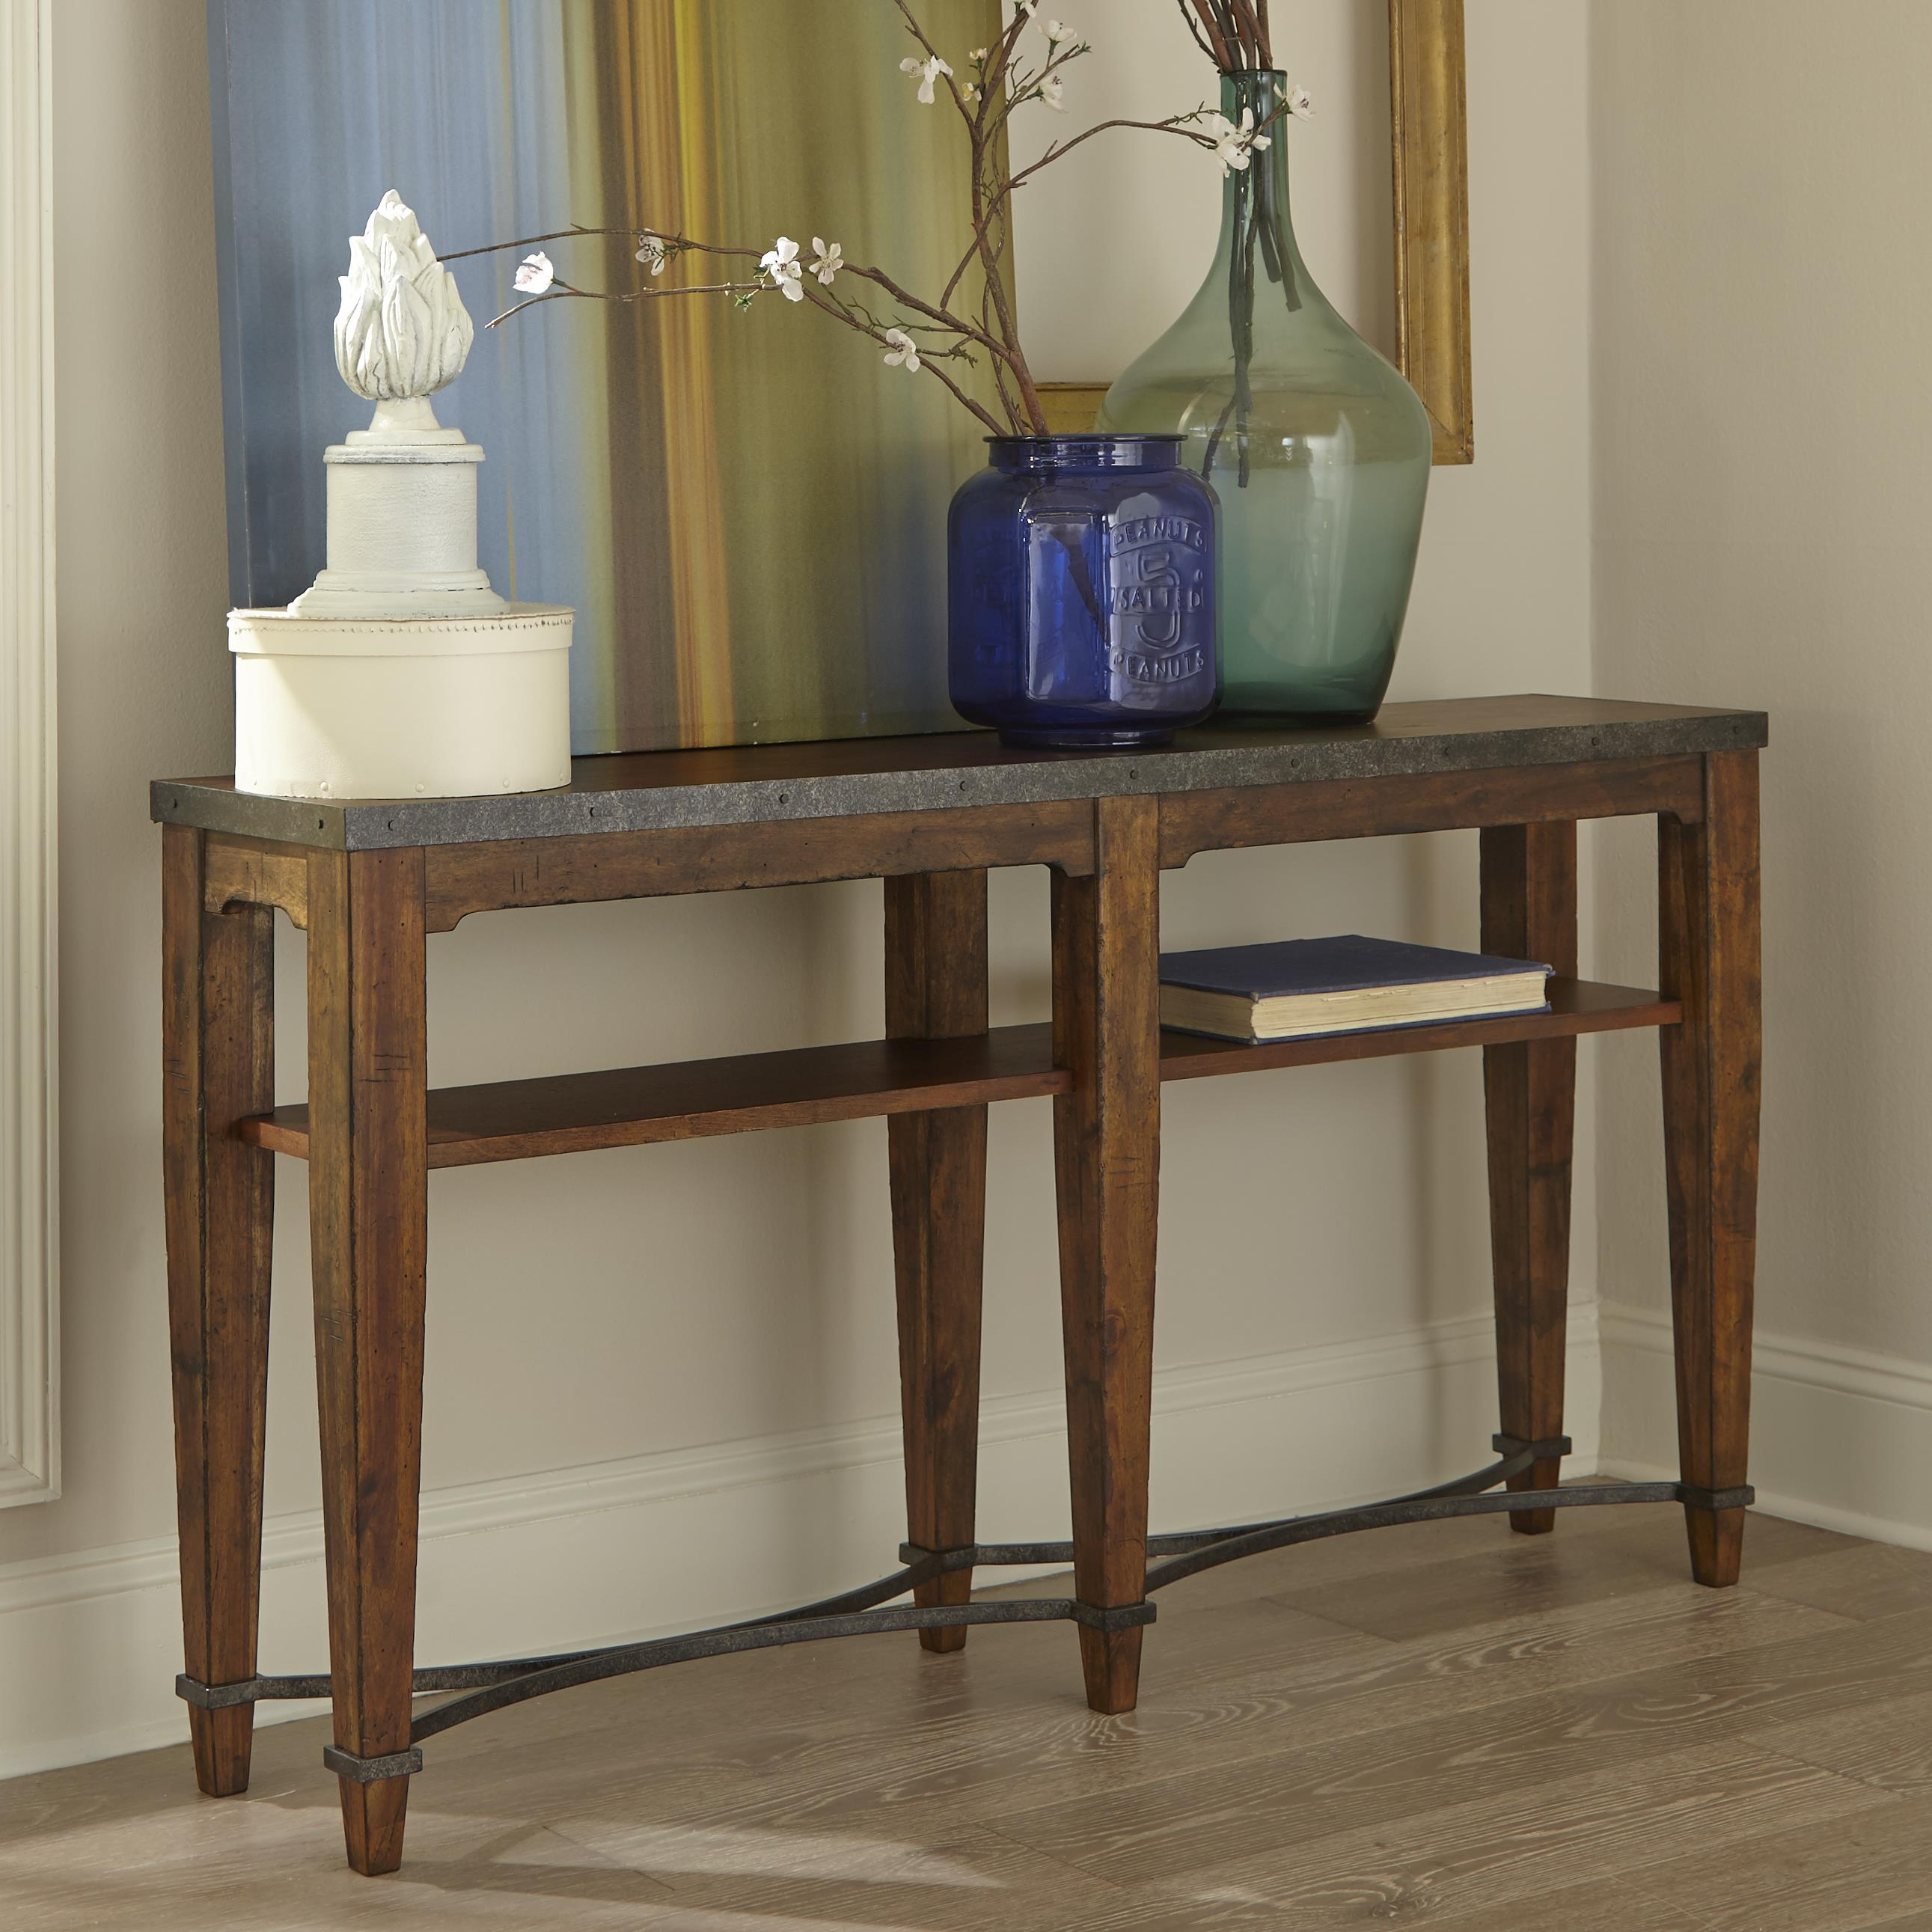 Trisha Yearwood Home Ginkgo Sofa Table by Trisha Yearwood Home Collection by Klaussner at Darvin Furniture